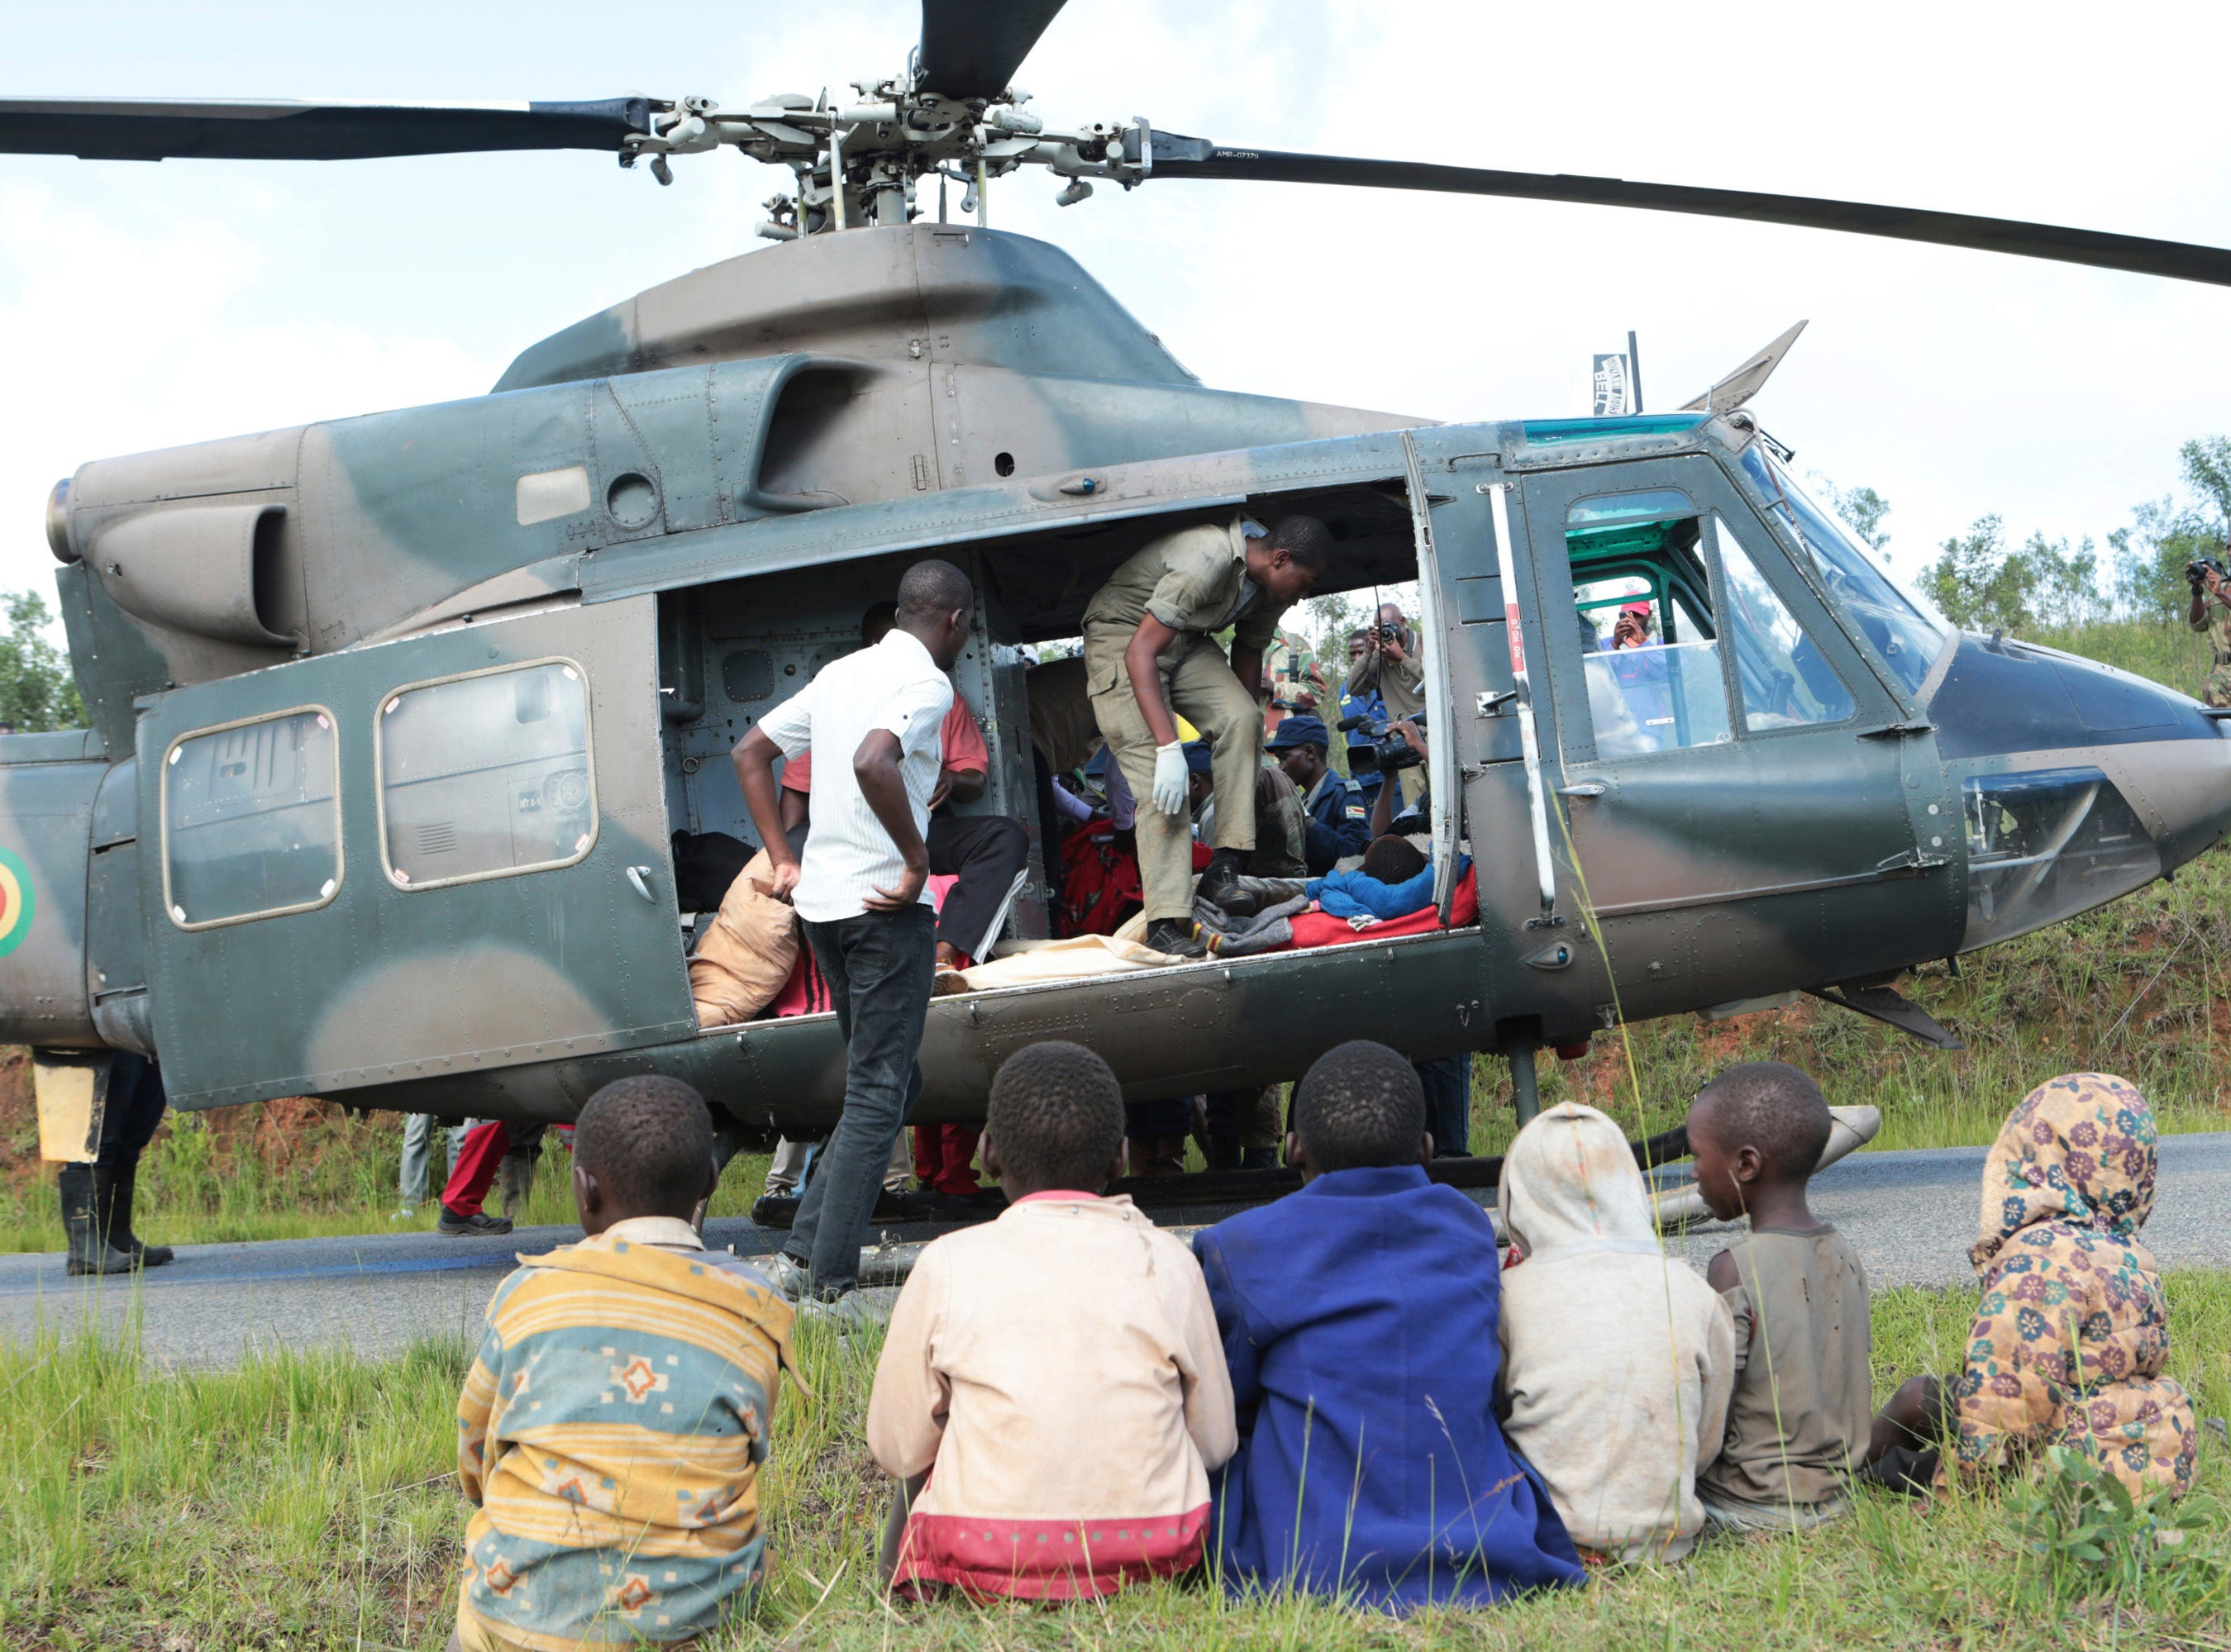 Soldiers and paramedics carry injured survivors from a helicopter in Chimanimani, Zimbabwe on March, 19, 2019.